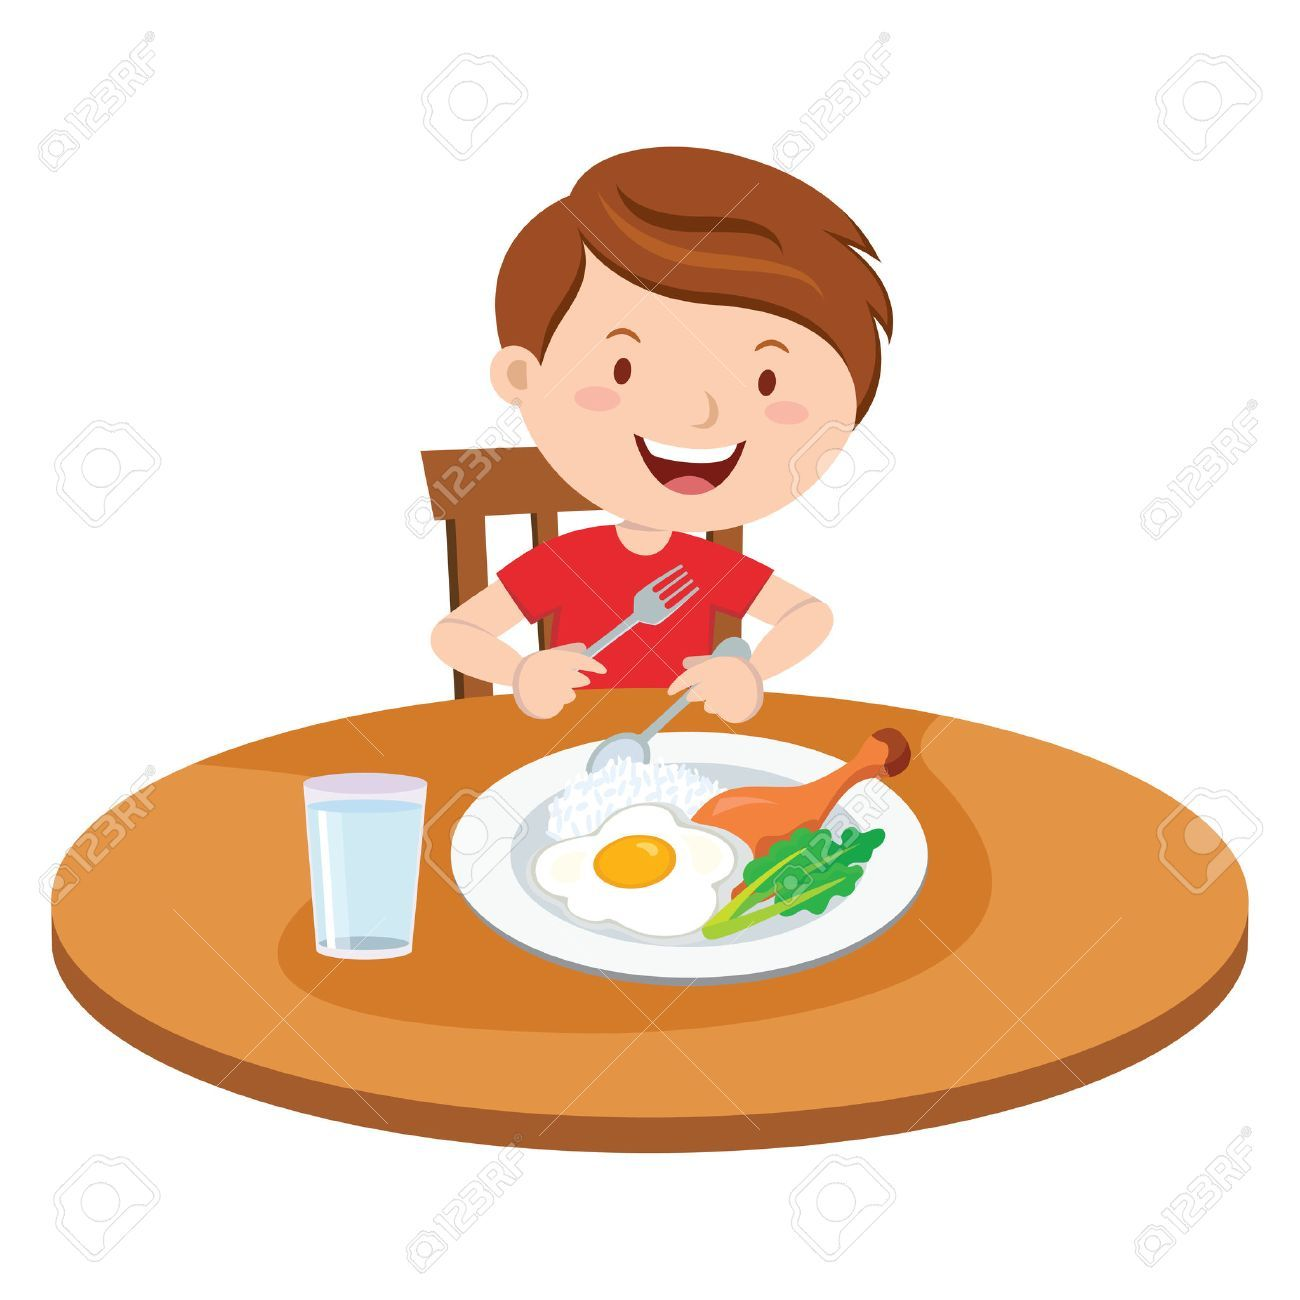 Eating child clipart 7 » Clipart Portal.